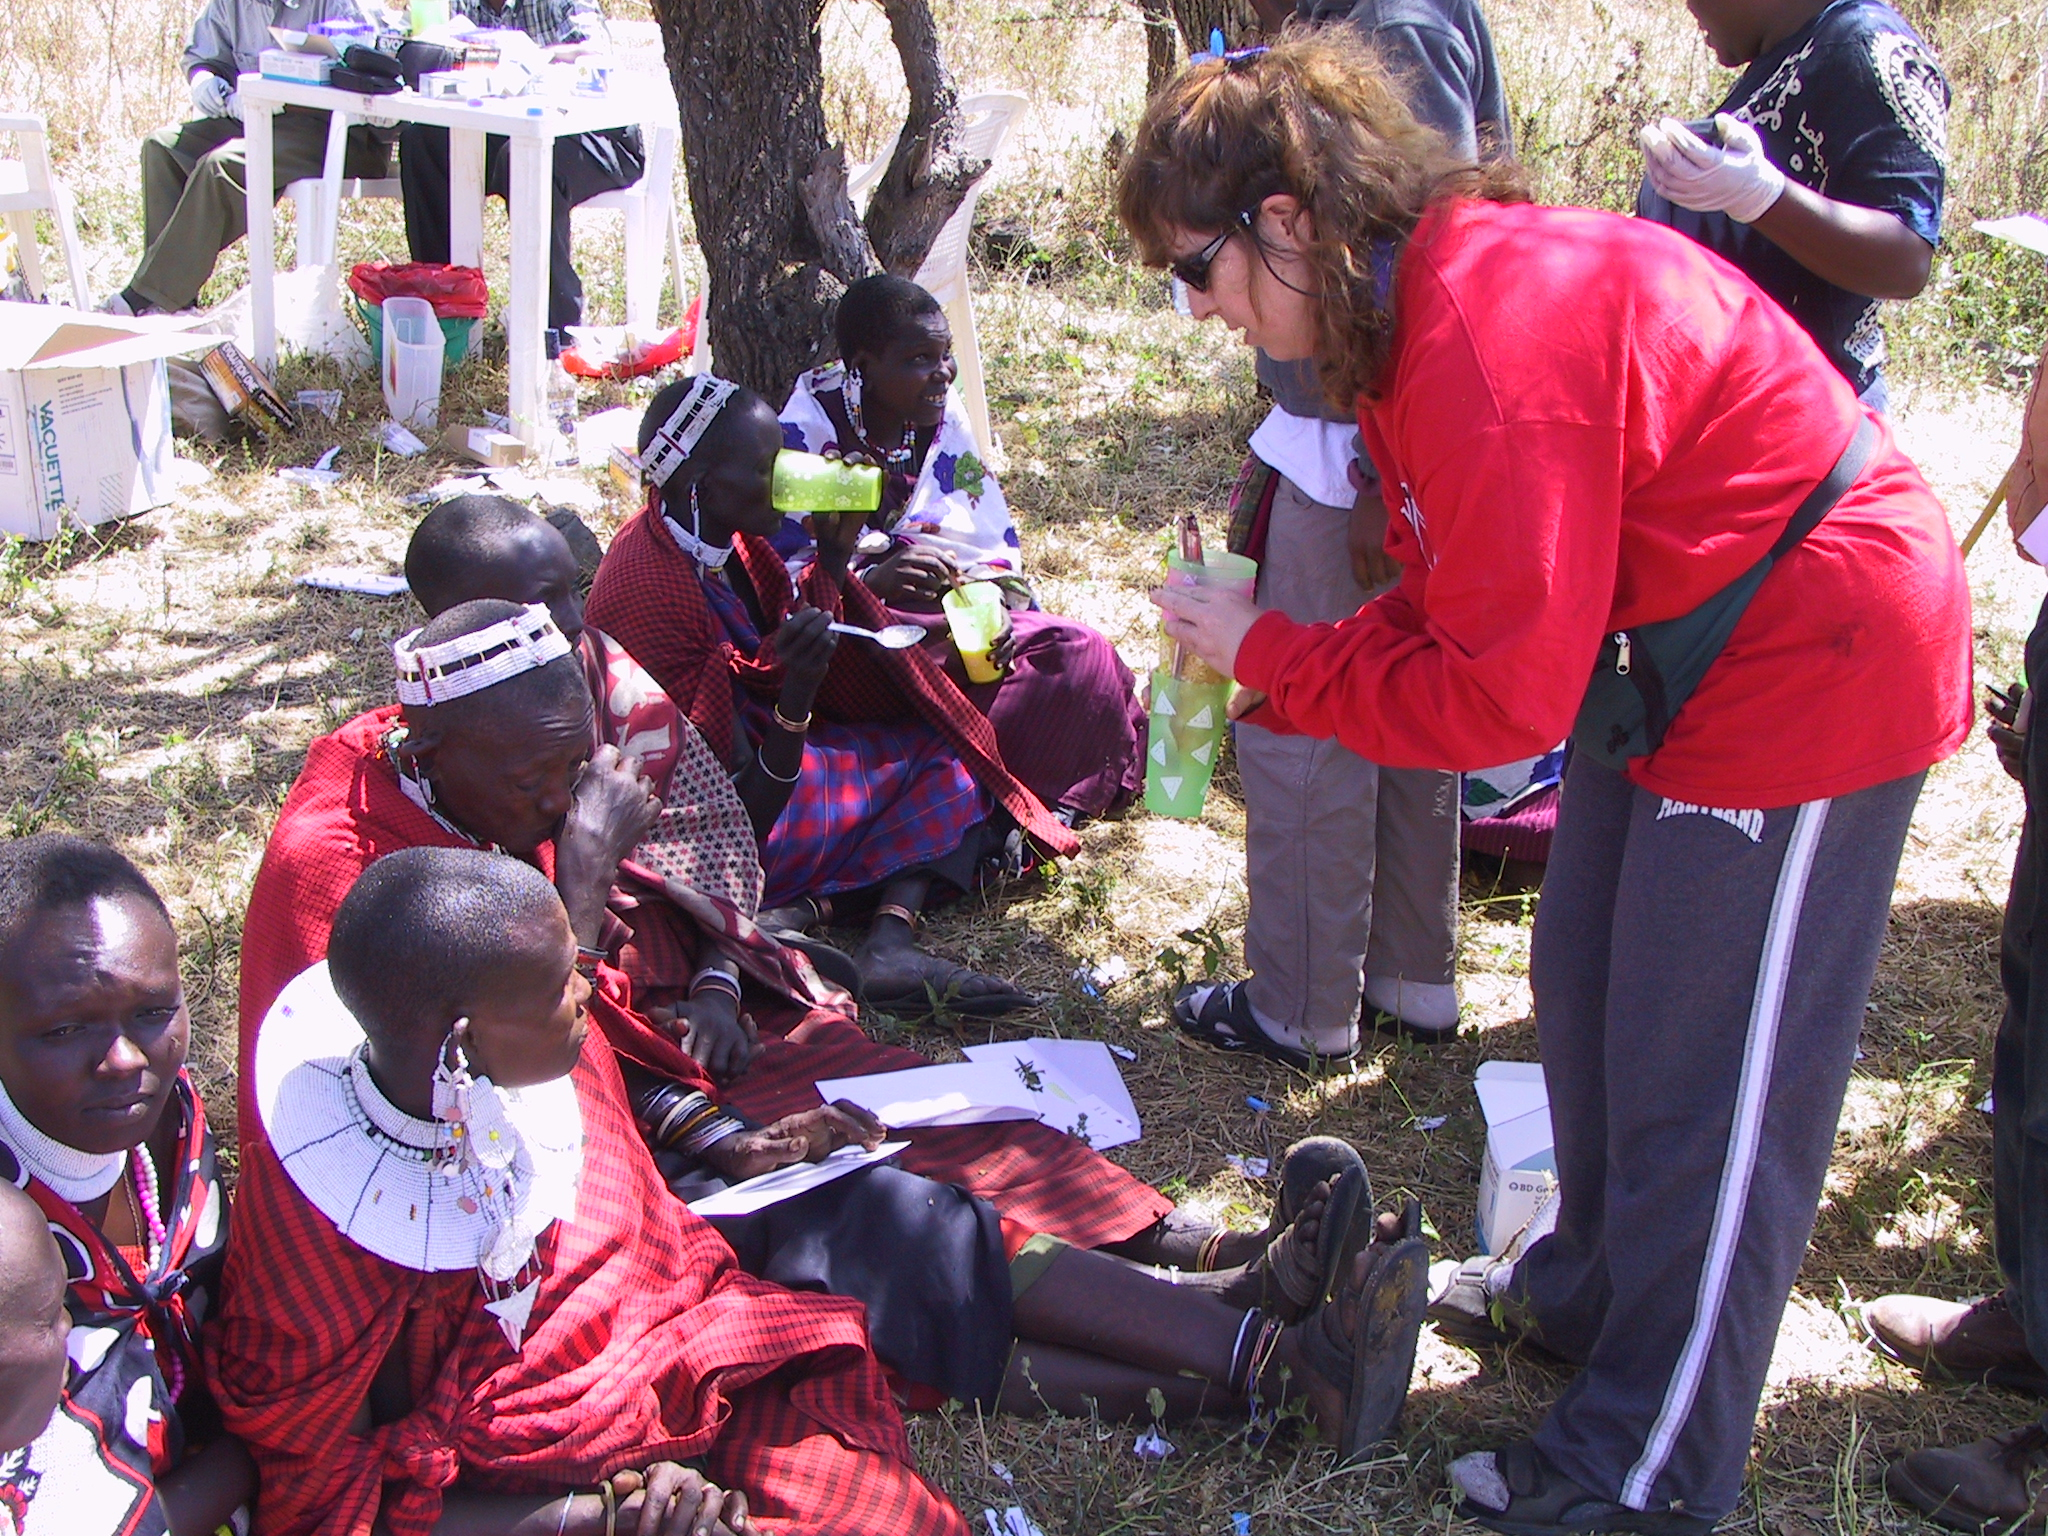 Sarah Tishkoff (at right) administers the lactose tolerance test to a group of Maasai people in Tanzania.